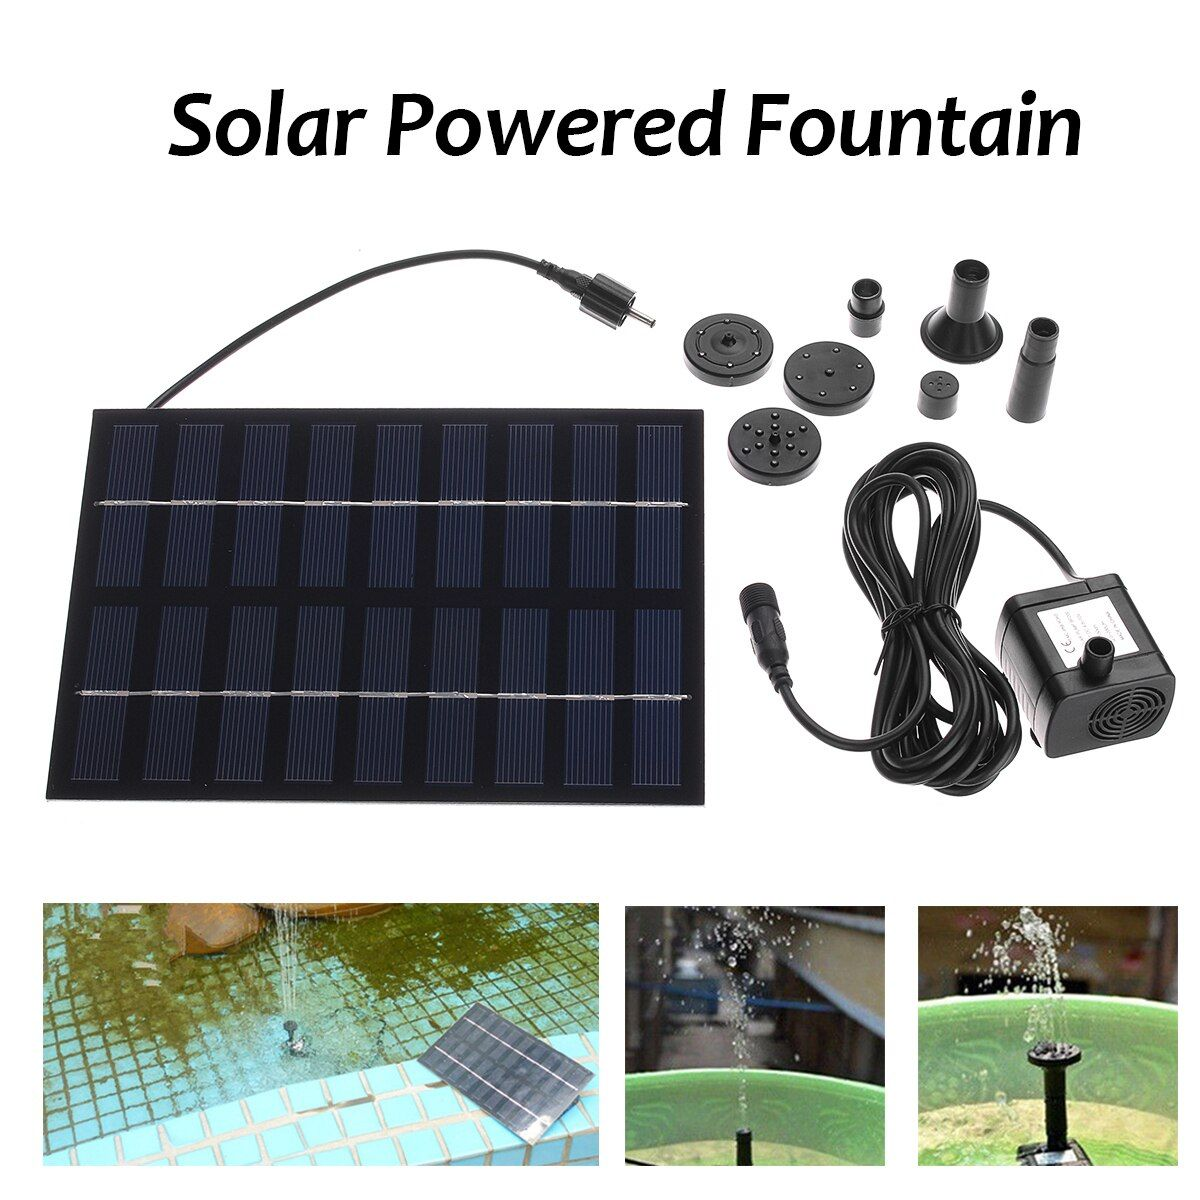 Brushless Solar Water Pump Fountain Pond Pool Rockery Water Garden Aquarium Submersible Water Pumps with Solar Panel